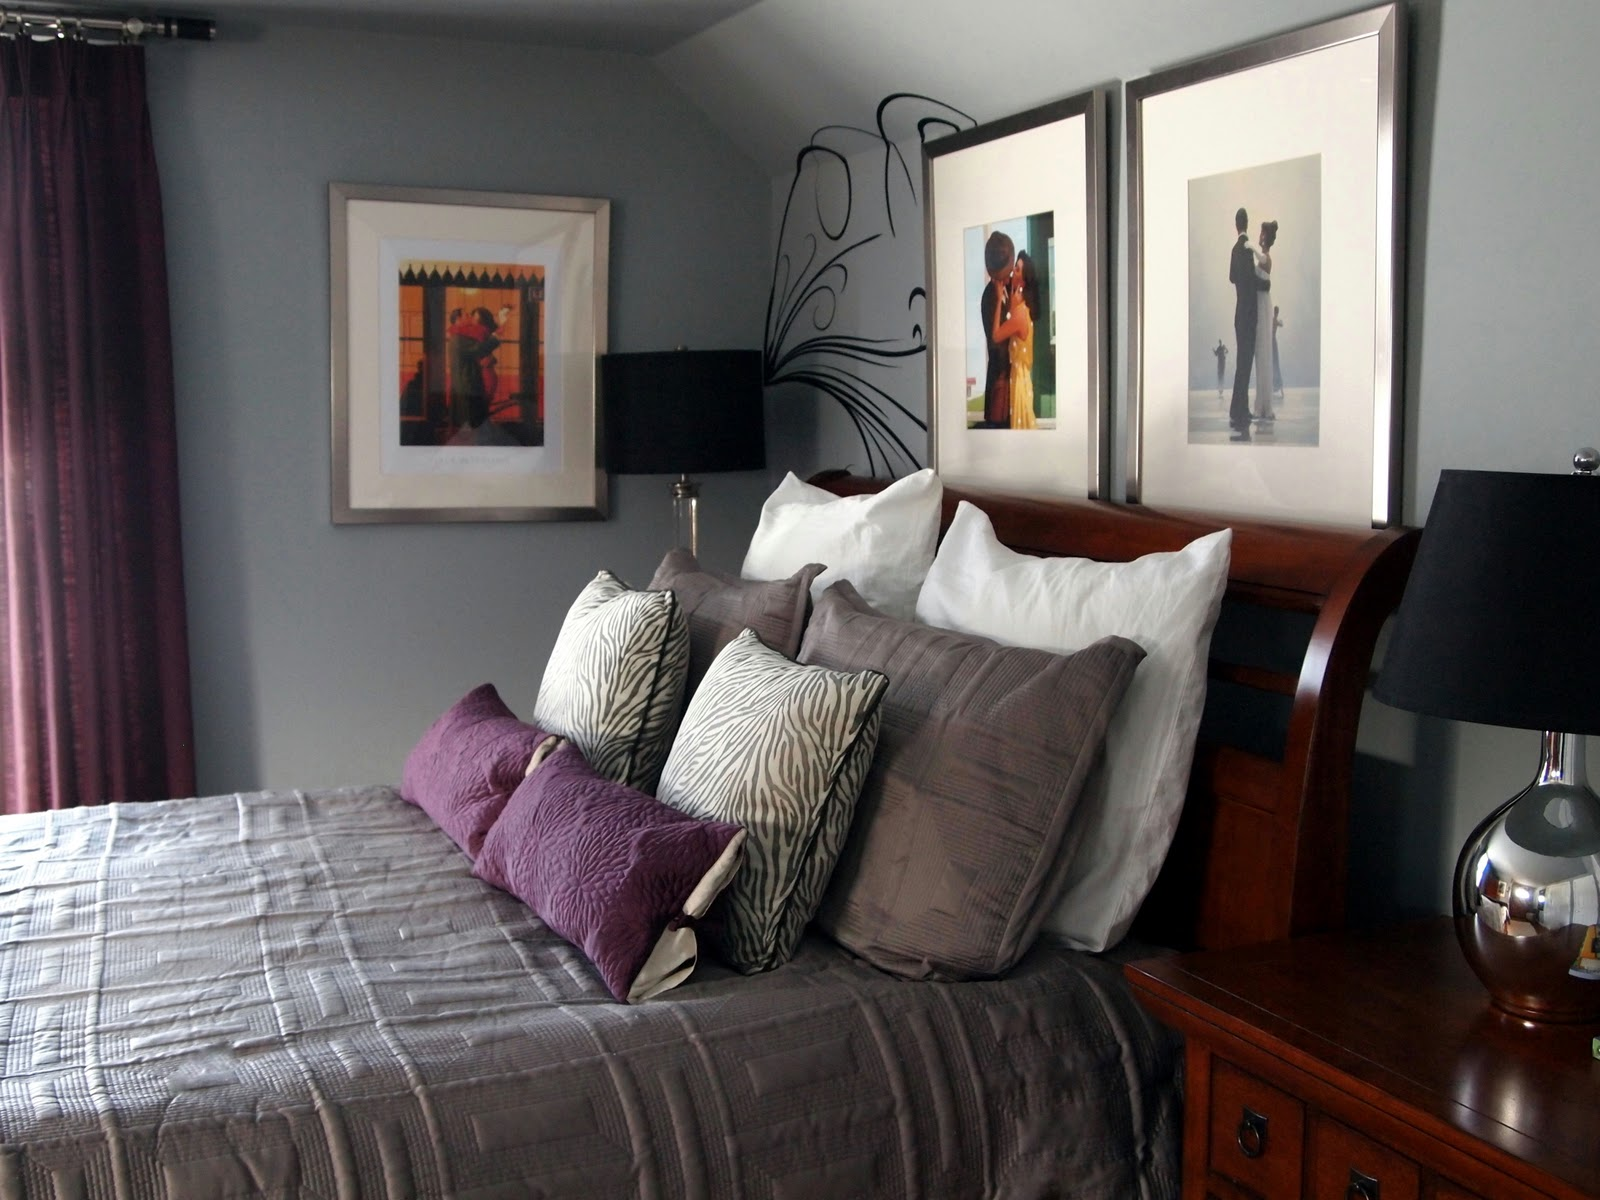 LoveYourRoom: A Man's Master Bedroom Re-design